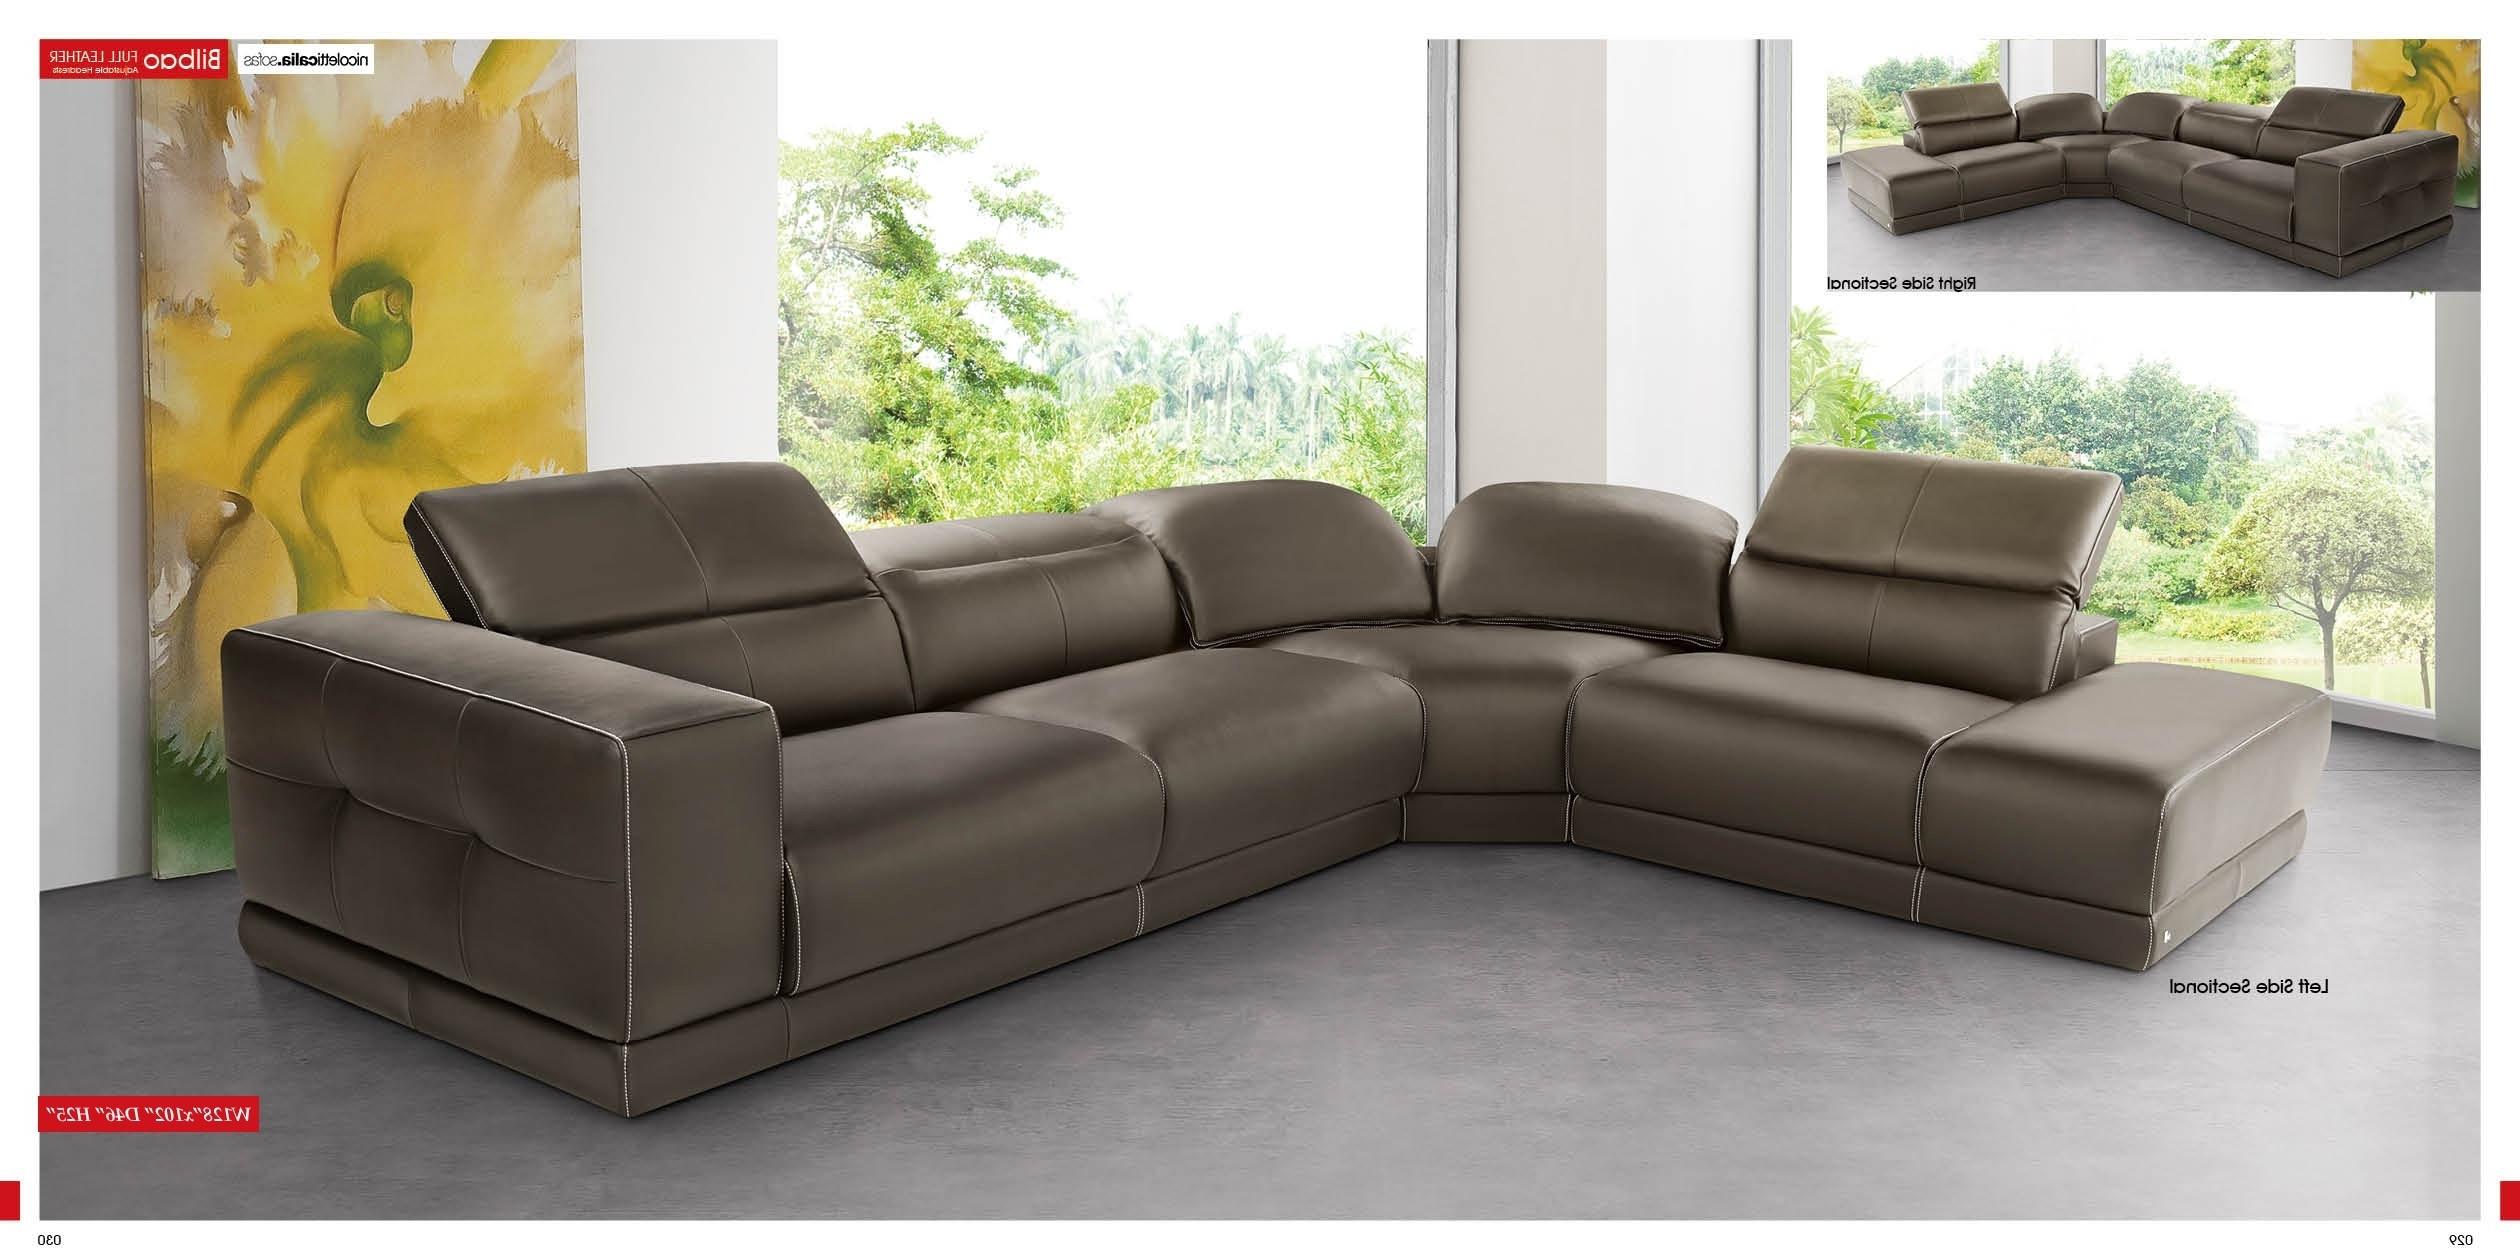 Well Known Greenville Sc Sectional Sofas Pertaining To Furniture : Sectional Sofa 80 Inches 170 Cm Corner Sofa Recliner (View 14 of 15)